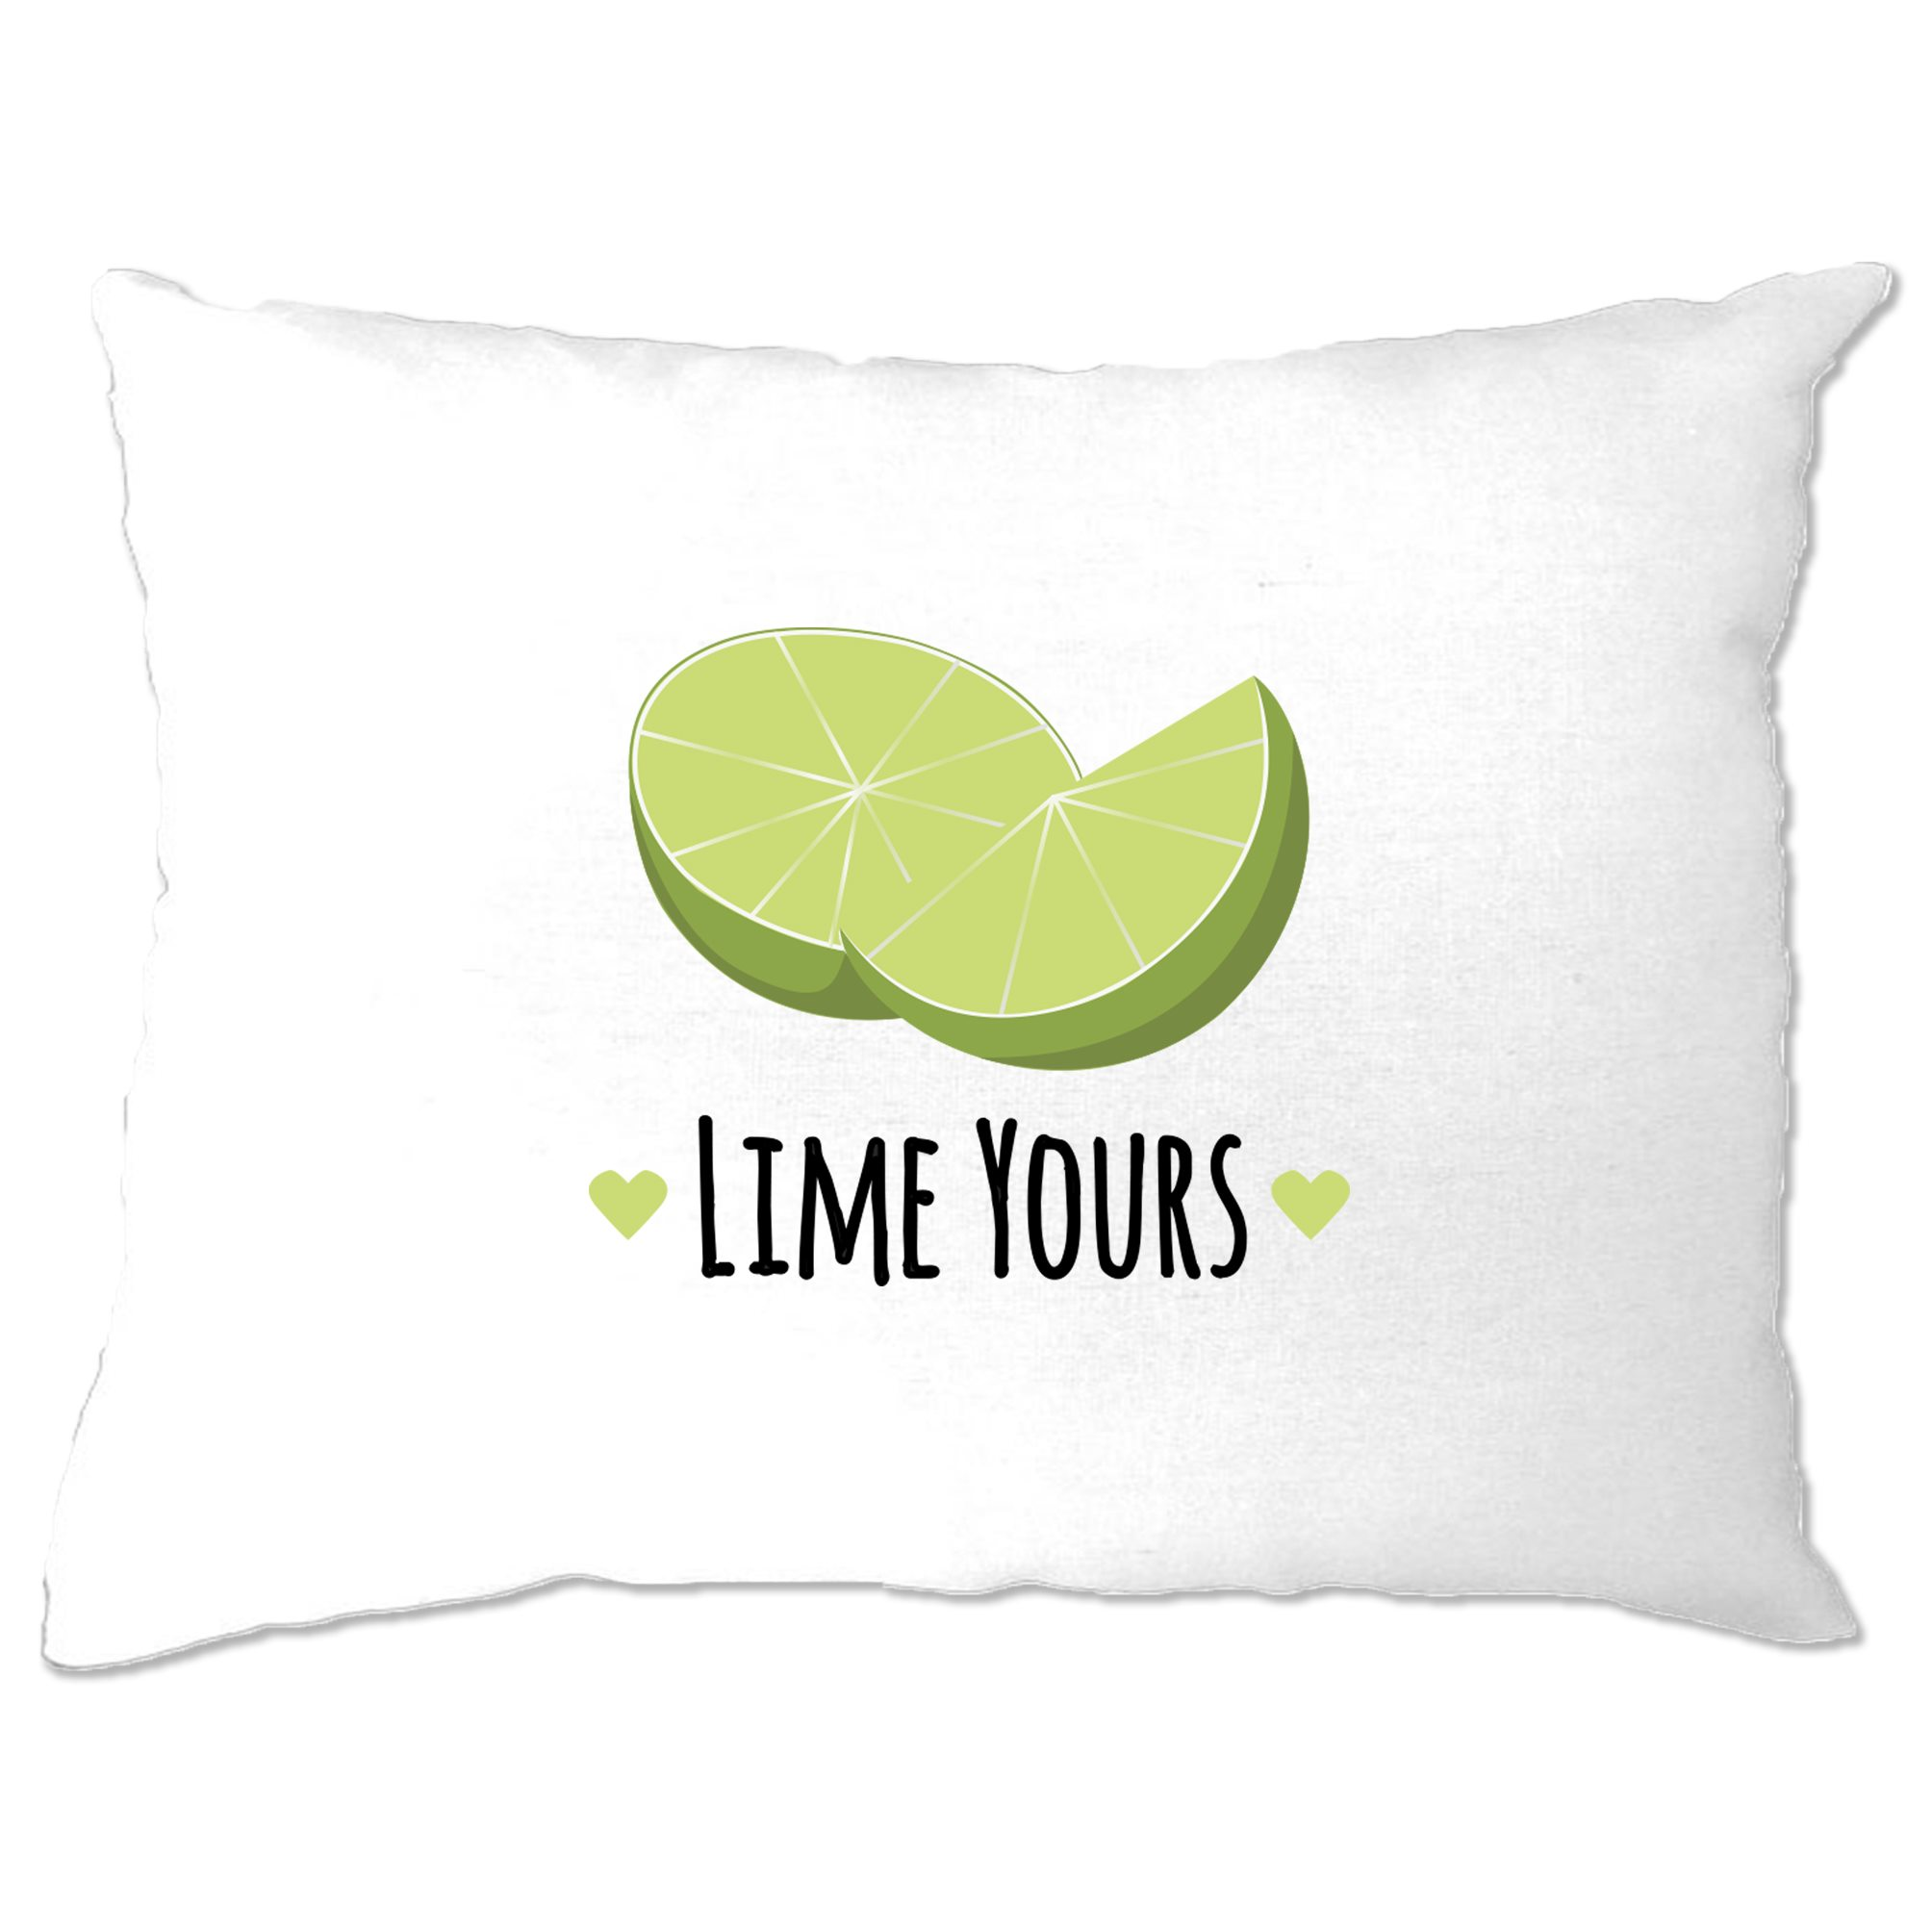 Novelty Couples Pun Pillow Case I/'m Yours Lime Joke Slogan Valentines Day Gift